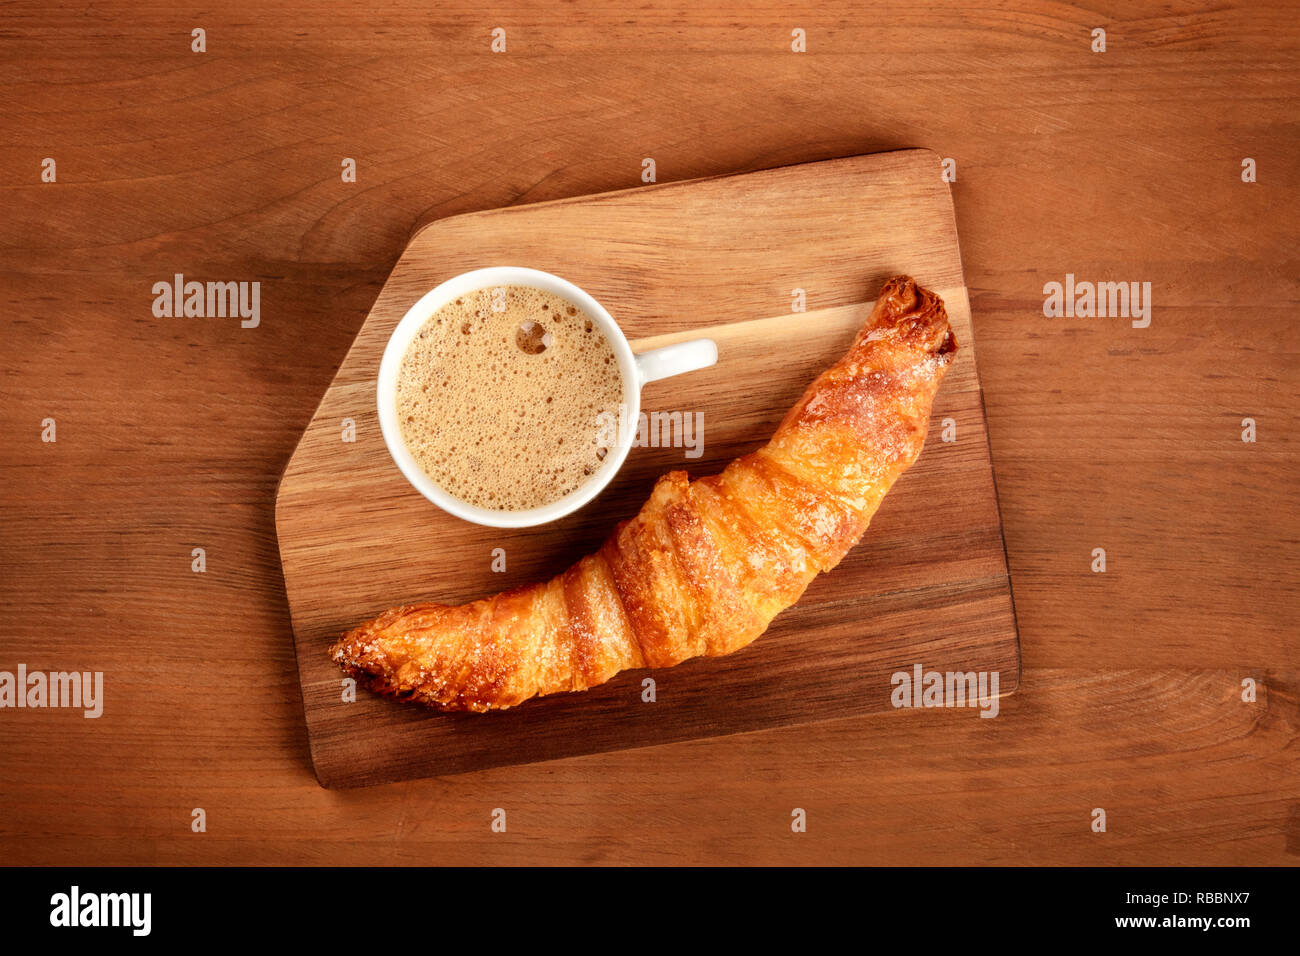 A photo of a croissant with a cup of coffee on a wooden tray, shot from above on a dark rustic background with copy space - Stock Image